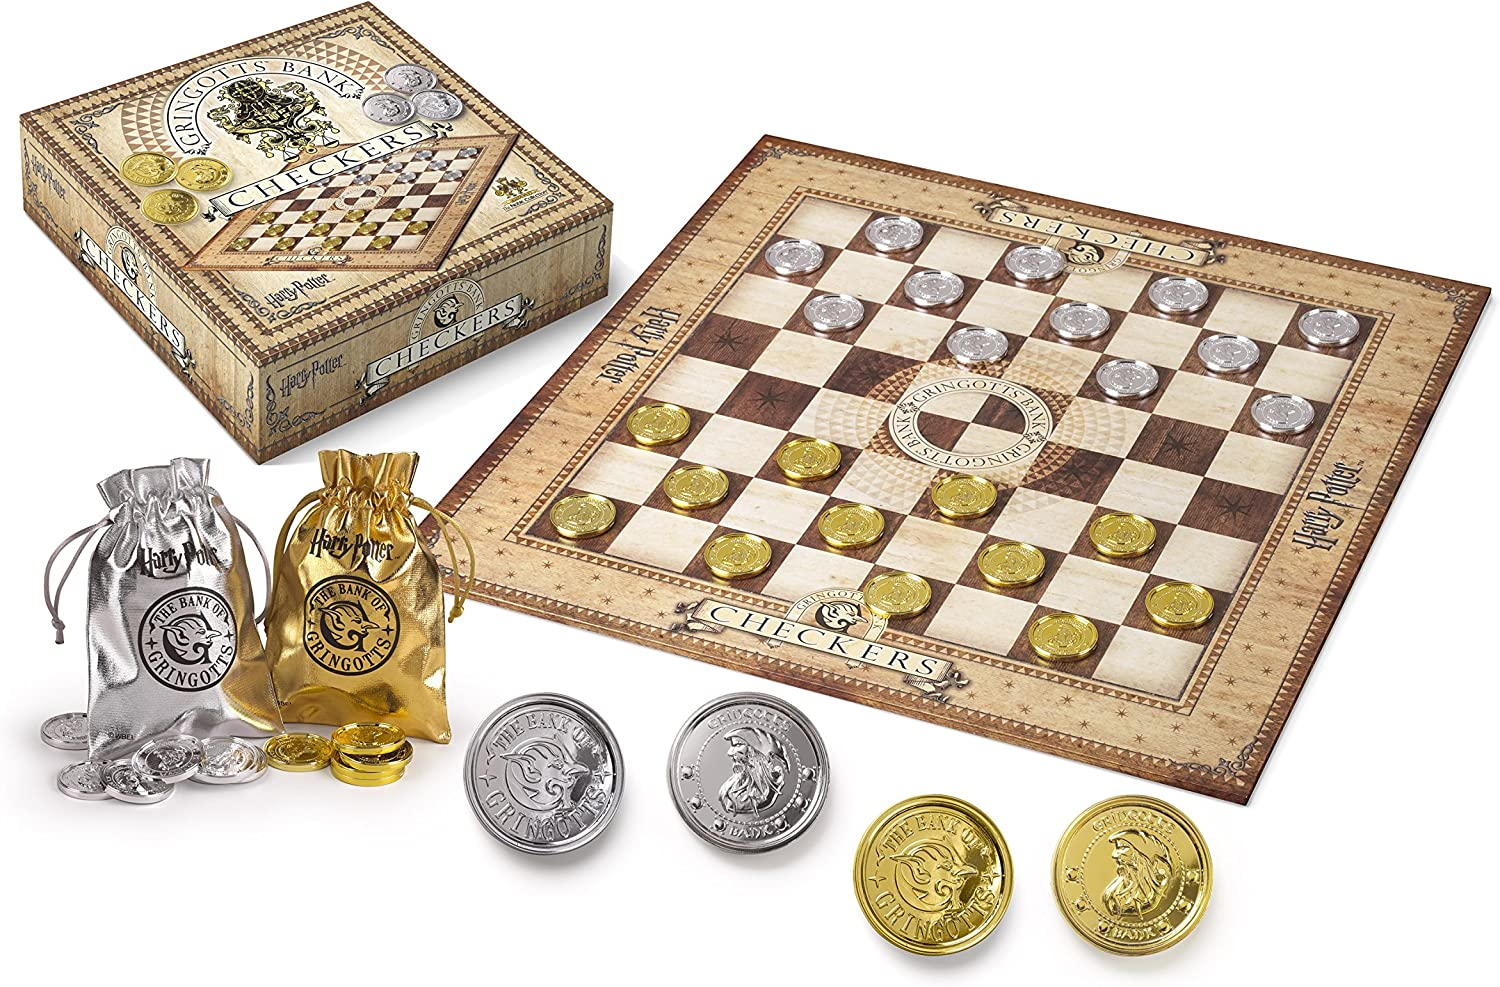 Noble Collection NN7215. Harry Potter Juego de Damas con Monedas Gringott.: Amazon.es: Juguetes y juegos